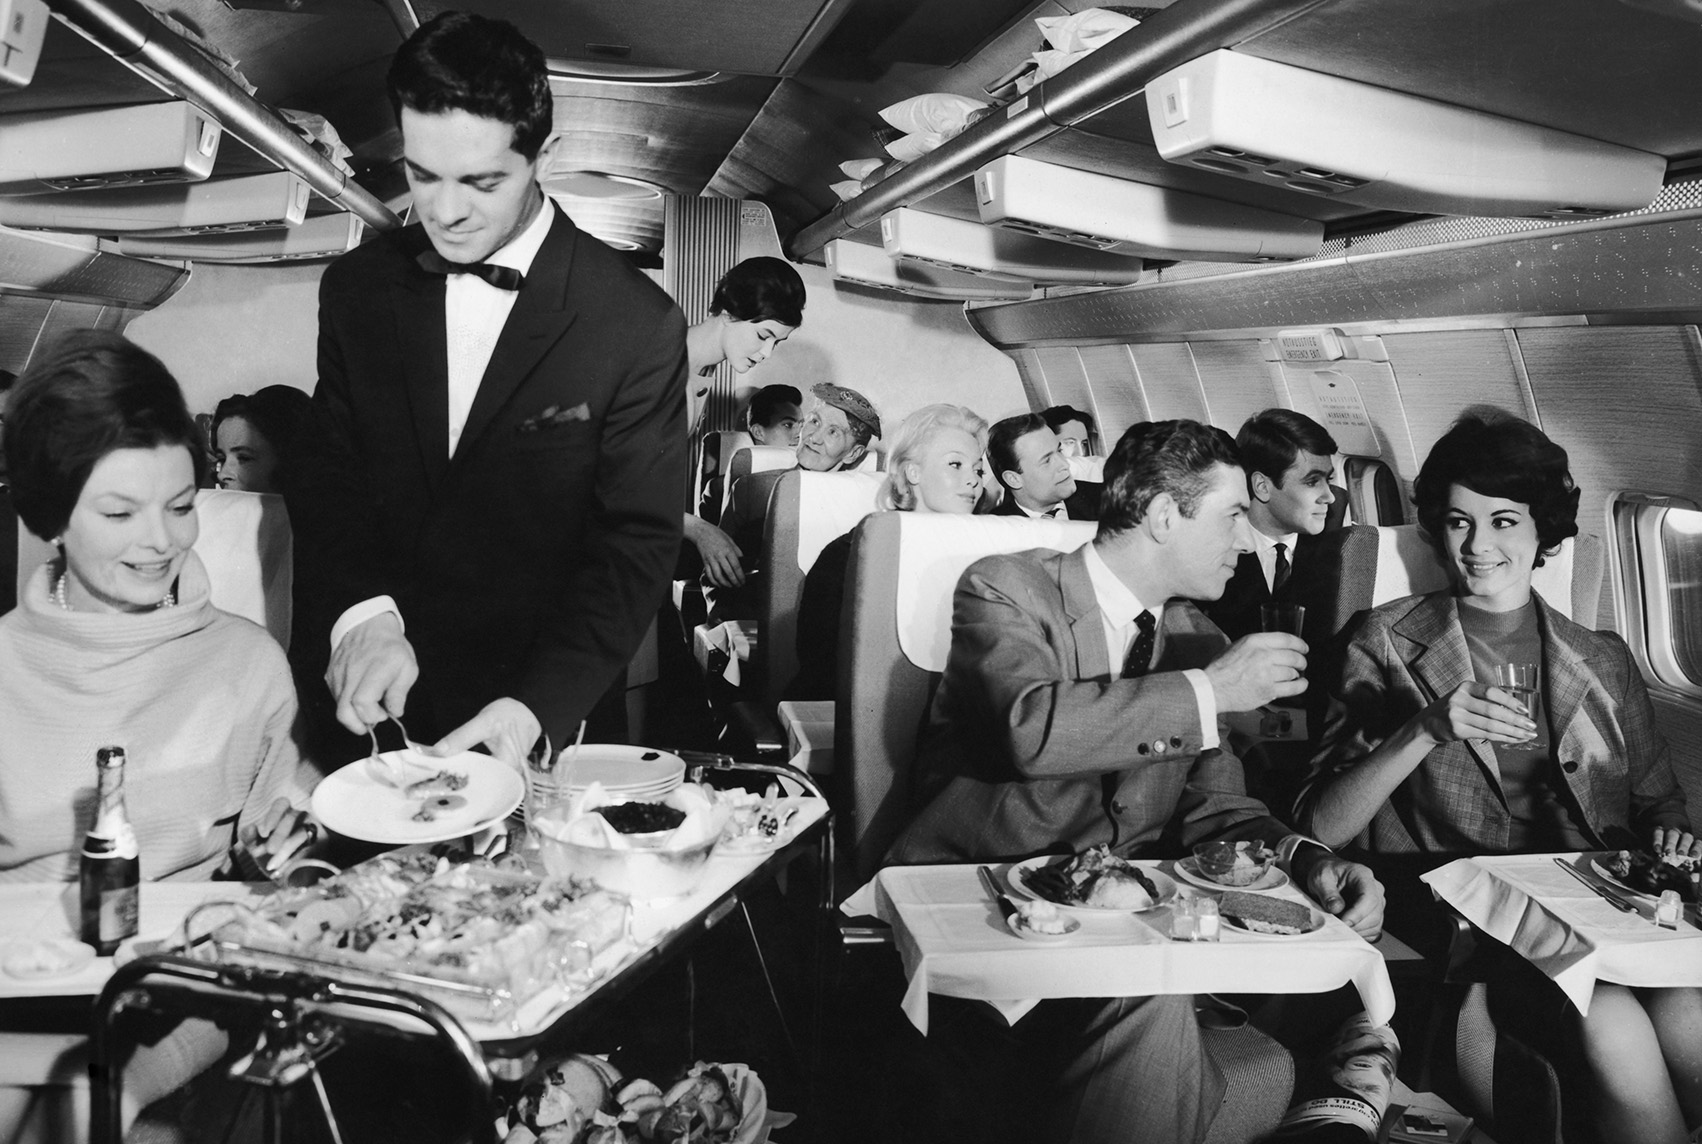 The Evolution of Business Class Seats